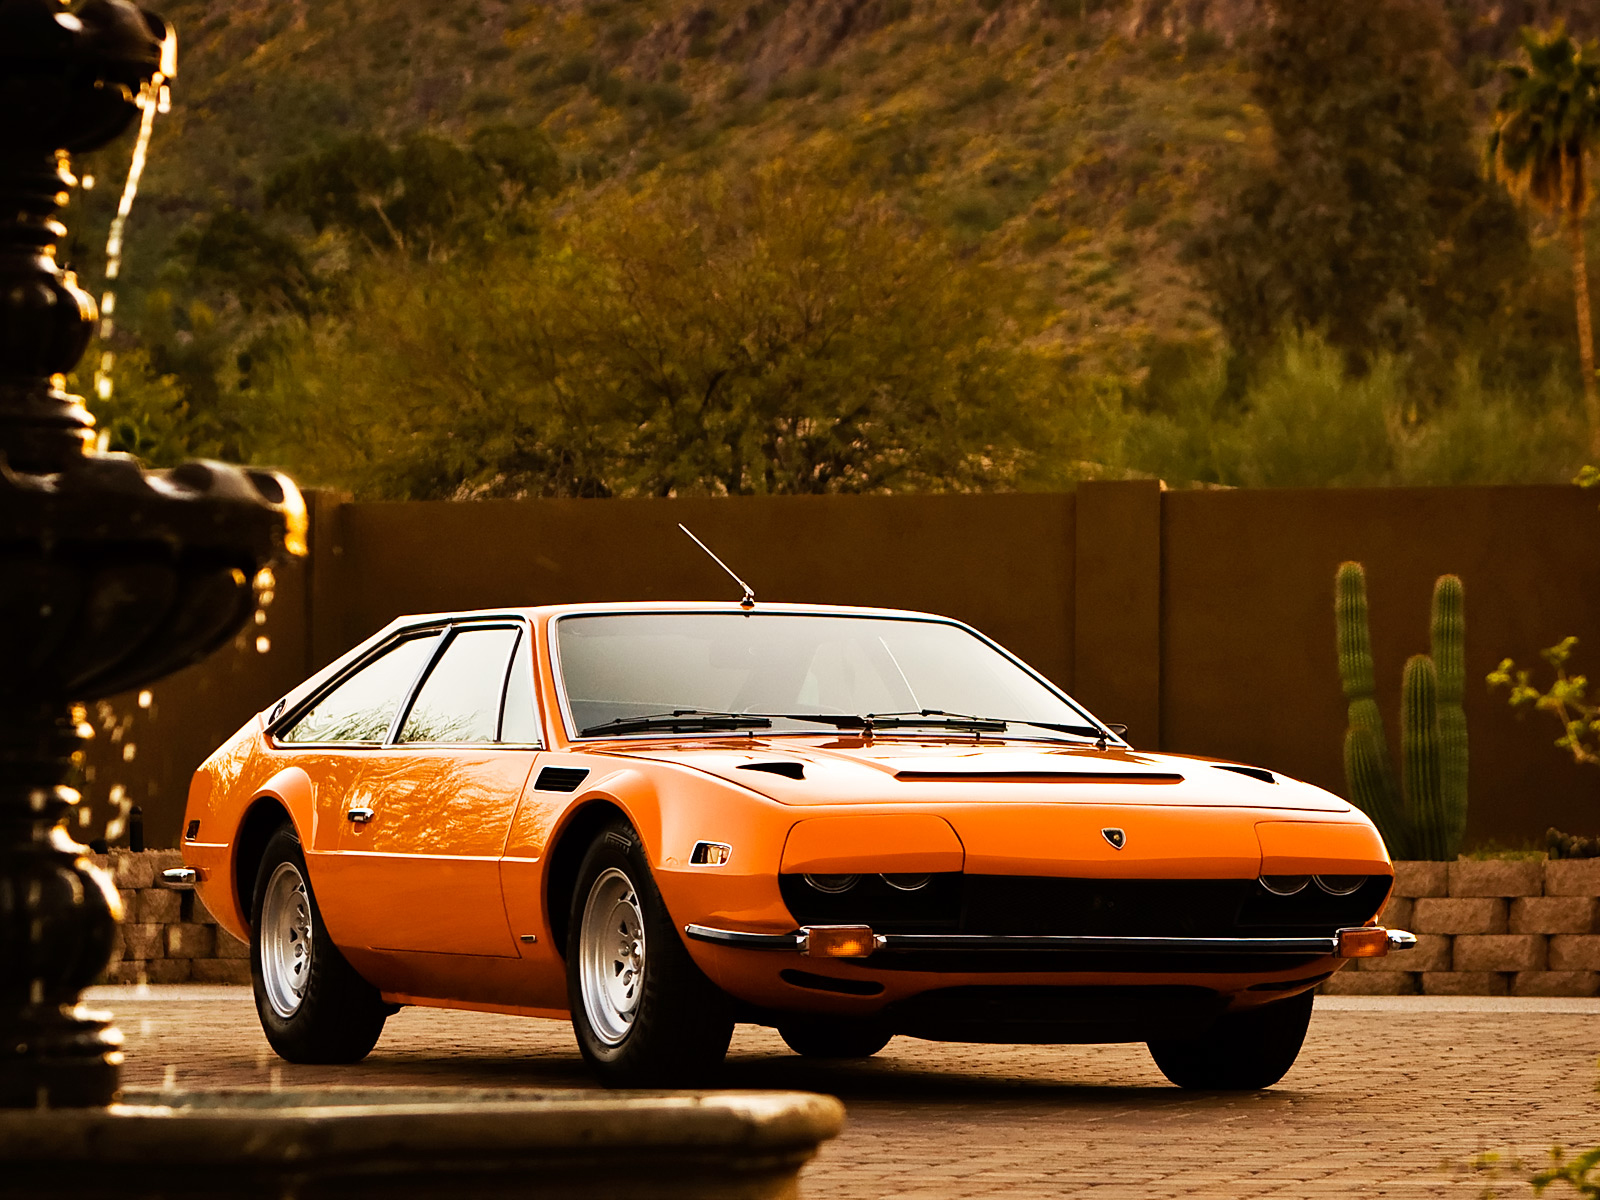 Lamborghini jarama photo - 3